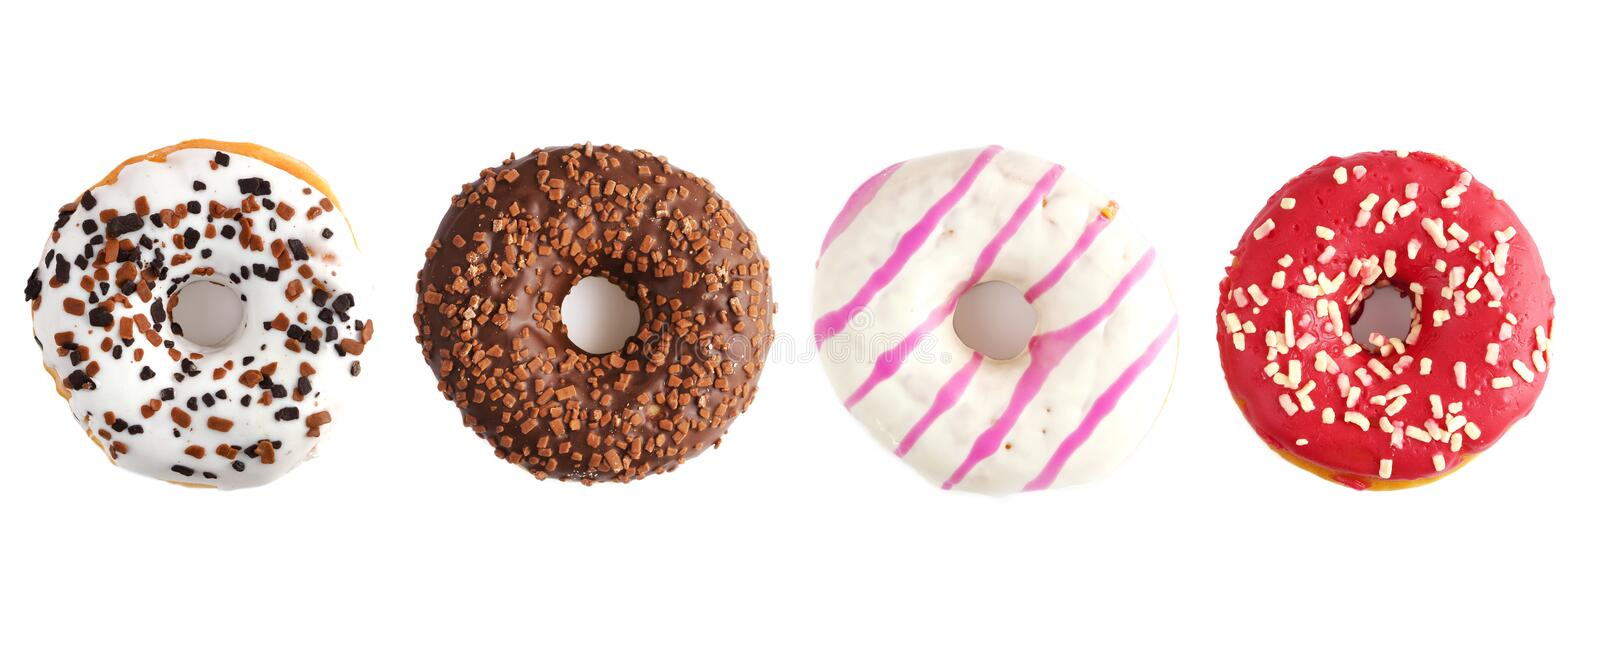 Donuts on a white background. Panorama stock images